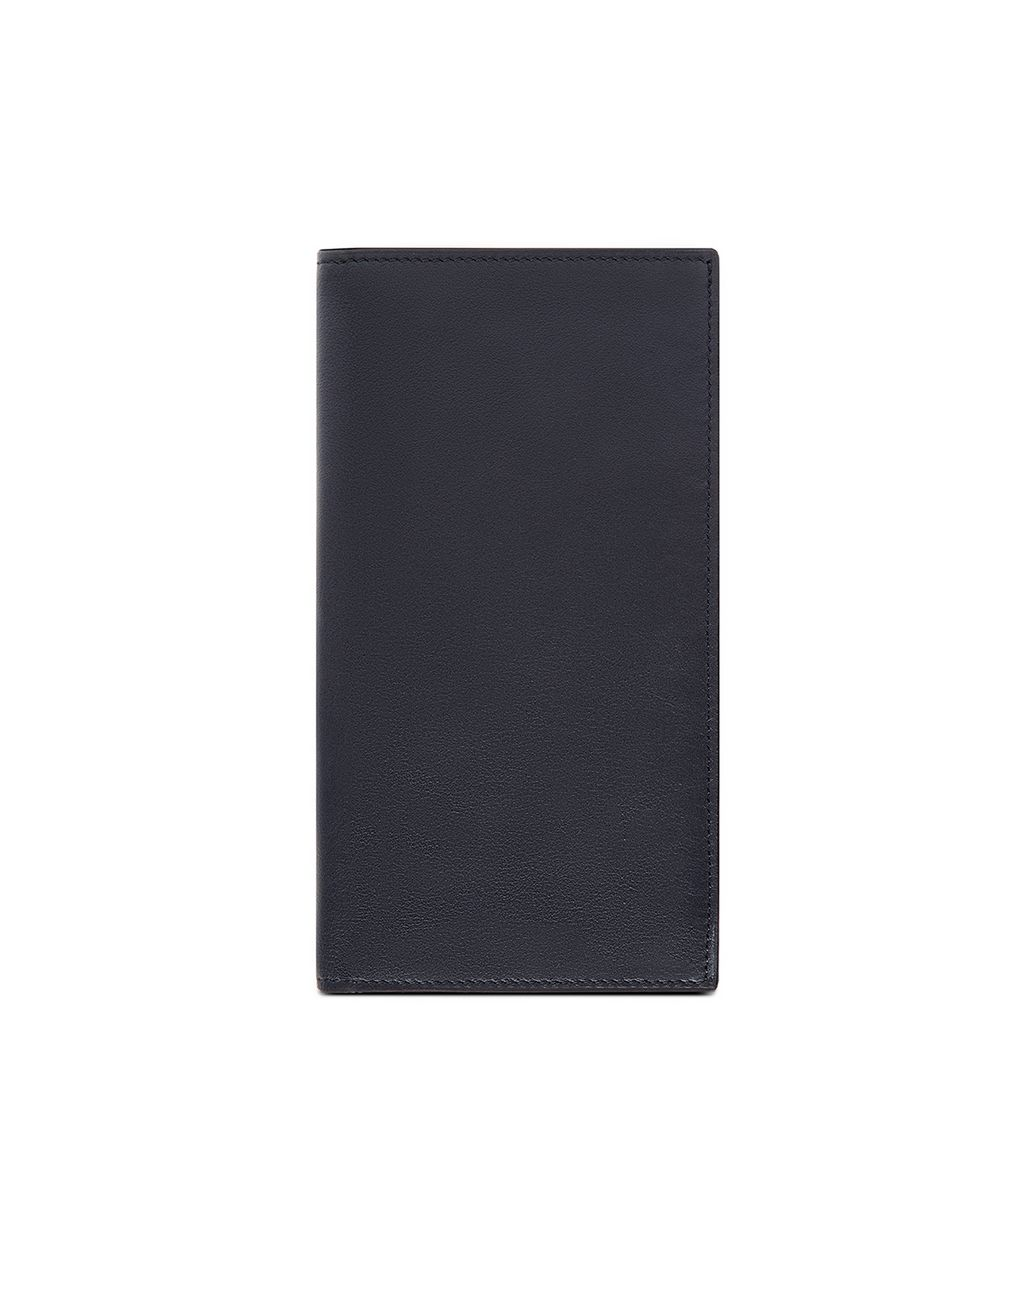 BRIONI Blue and Black Continental Wallet in Smooth Calfskin Leather Goods U f